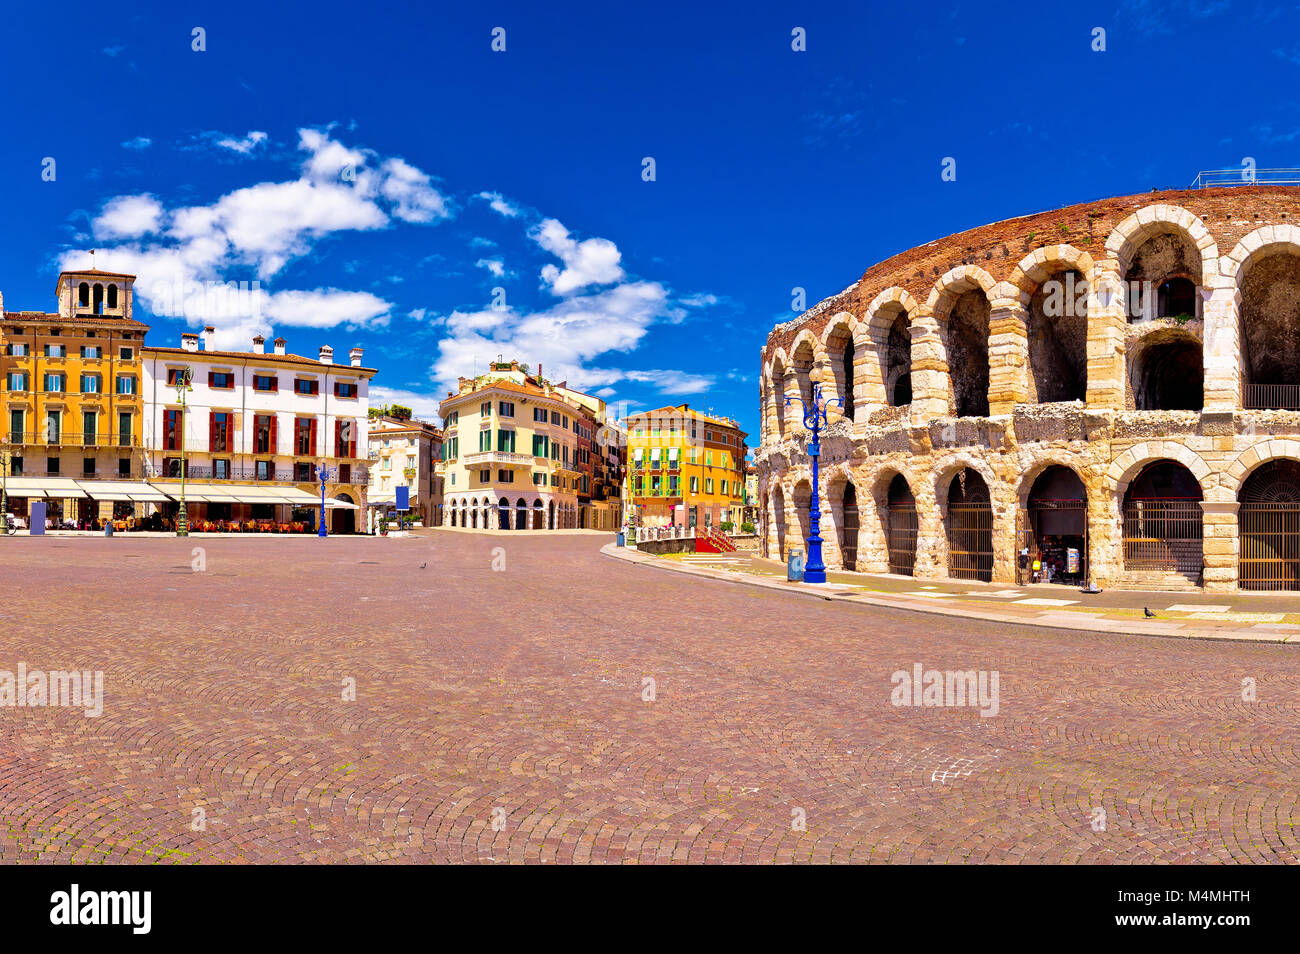 Roman amphitheatre Arena di Verona and Piazza Bra square panoramic view, landmark in Veneto region of Italy - Stock Image